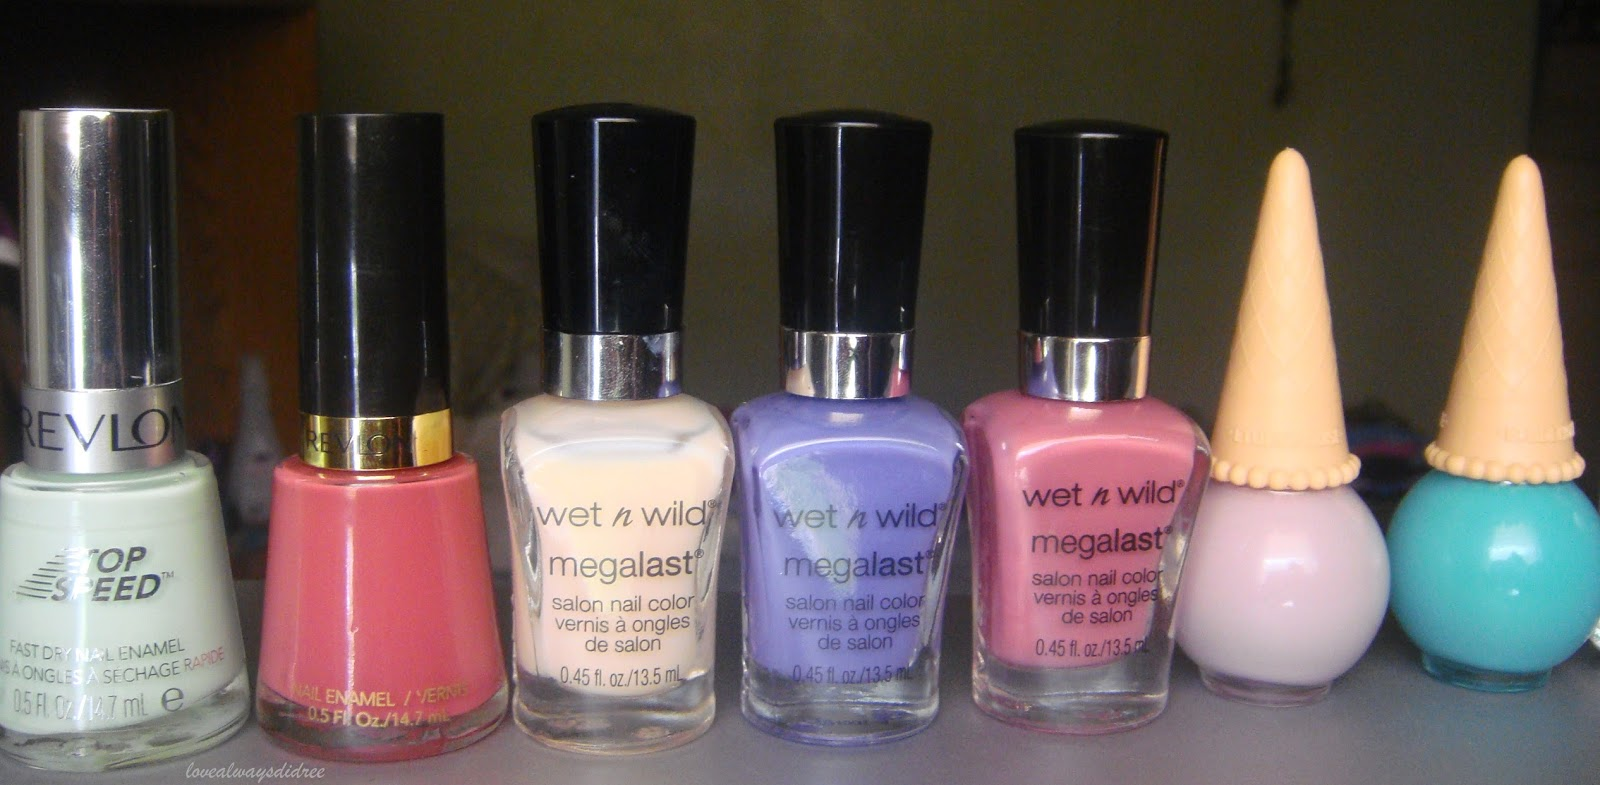 Micro Reviews Everyday Nail Polish Haul Wet N Wild Megalast